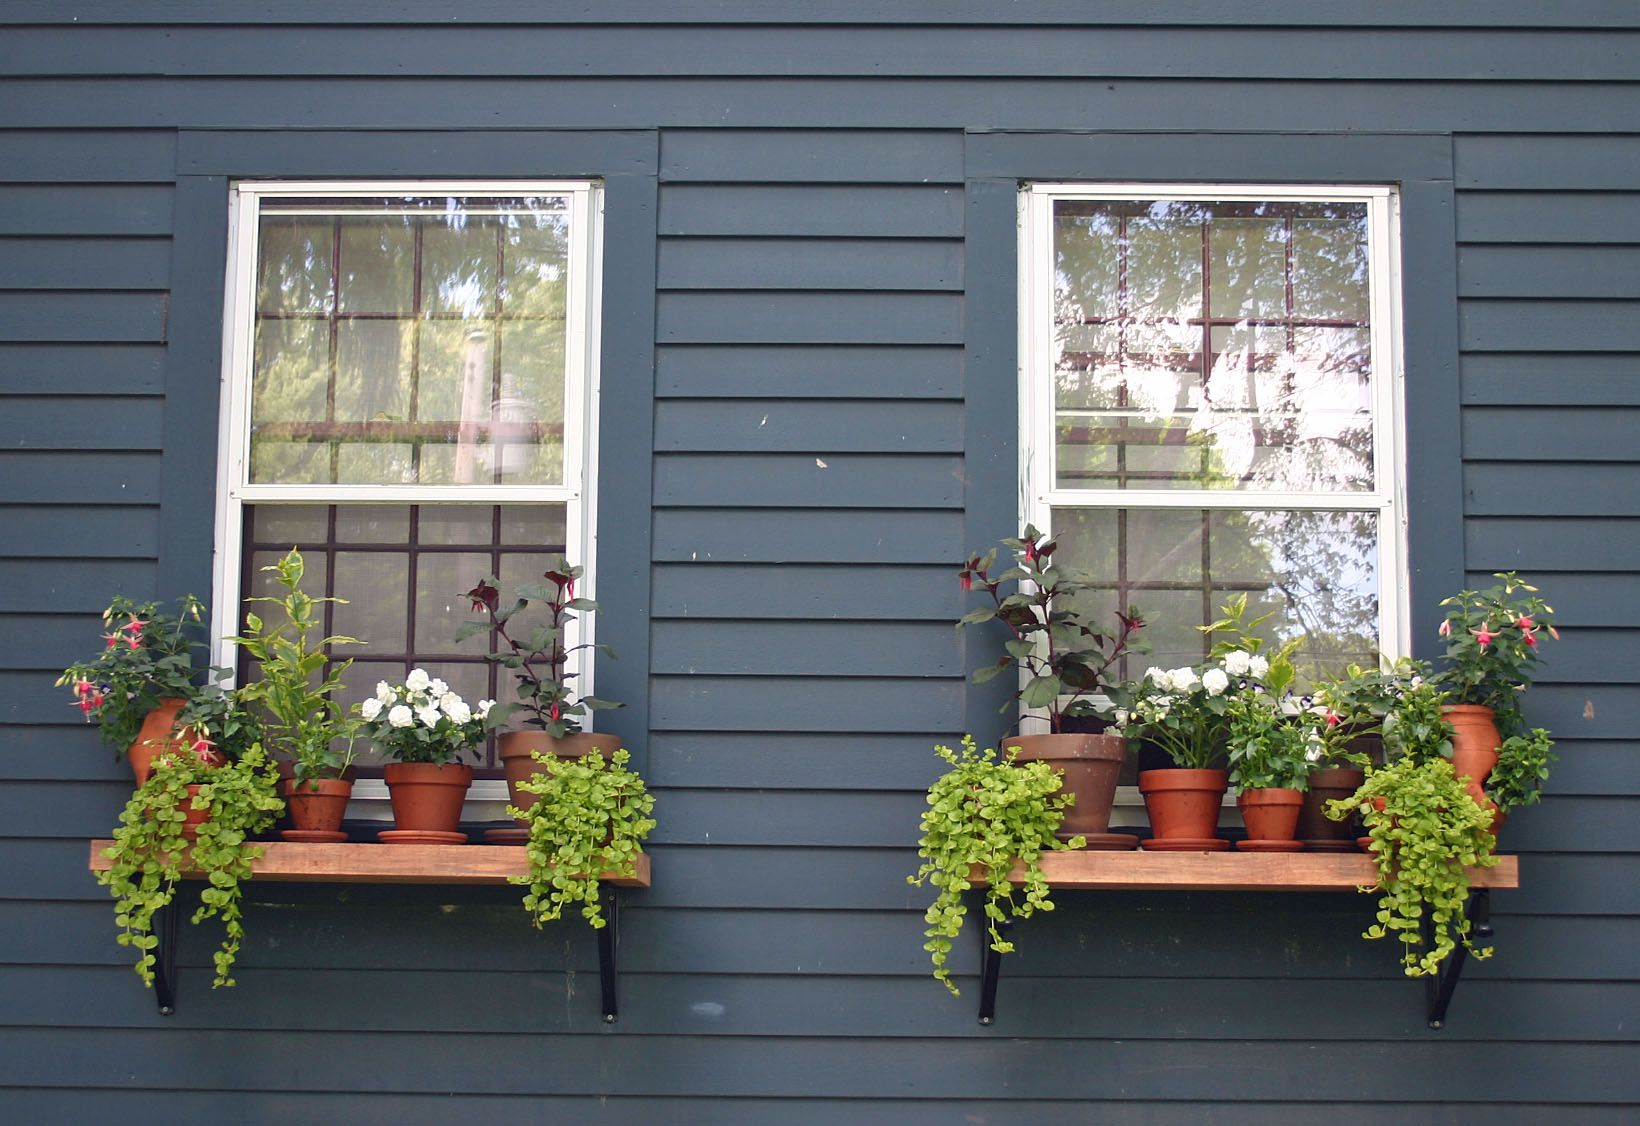 Homemade Outdoor Window Shelves Always Thinking Outside The Box